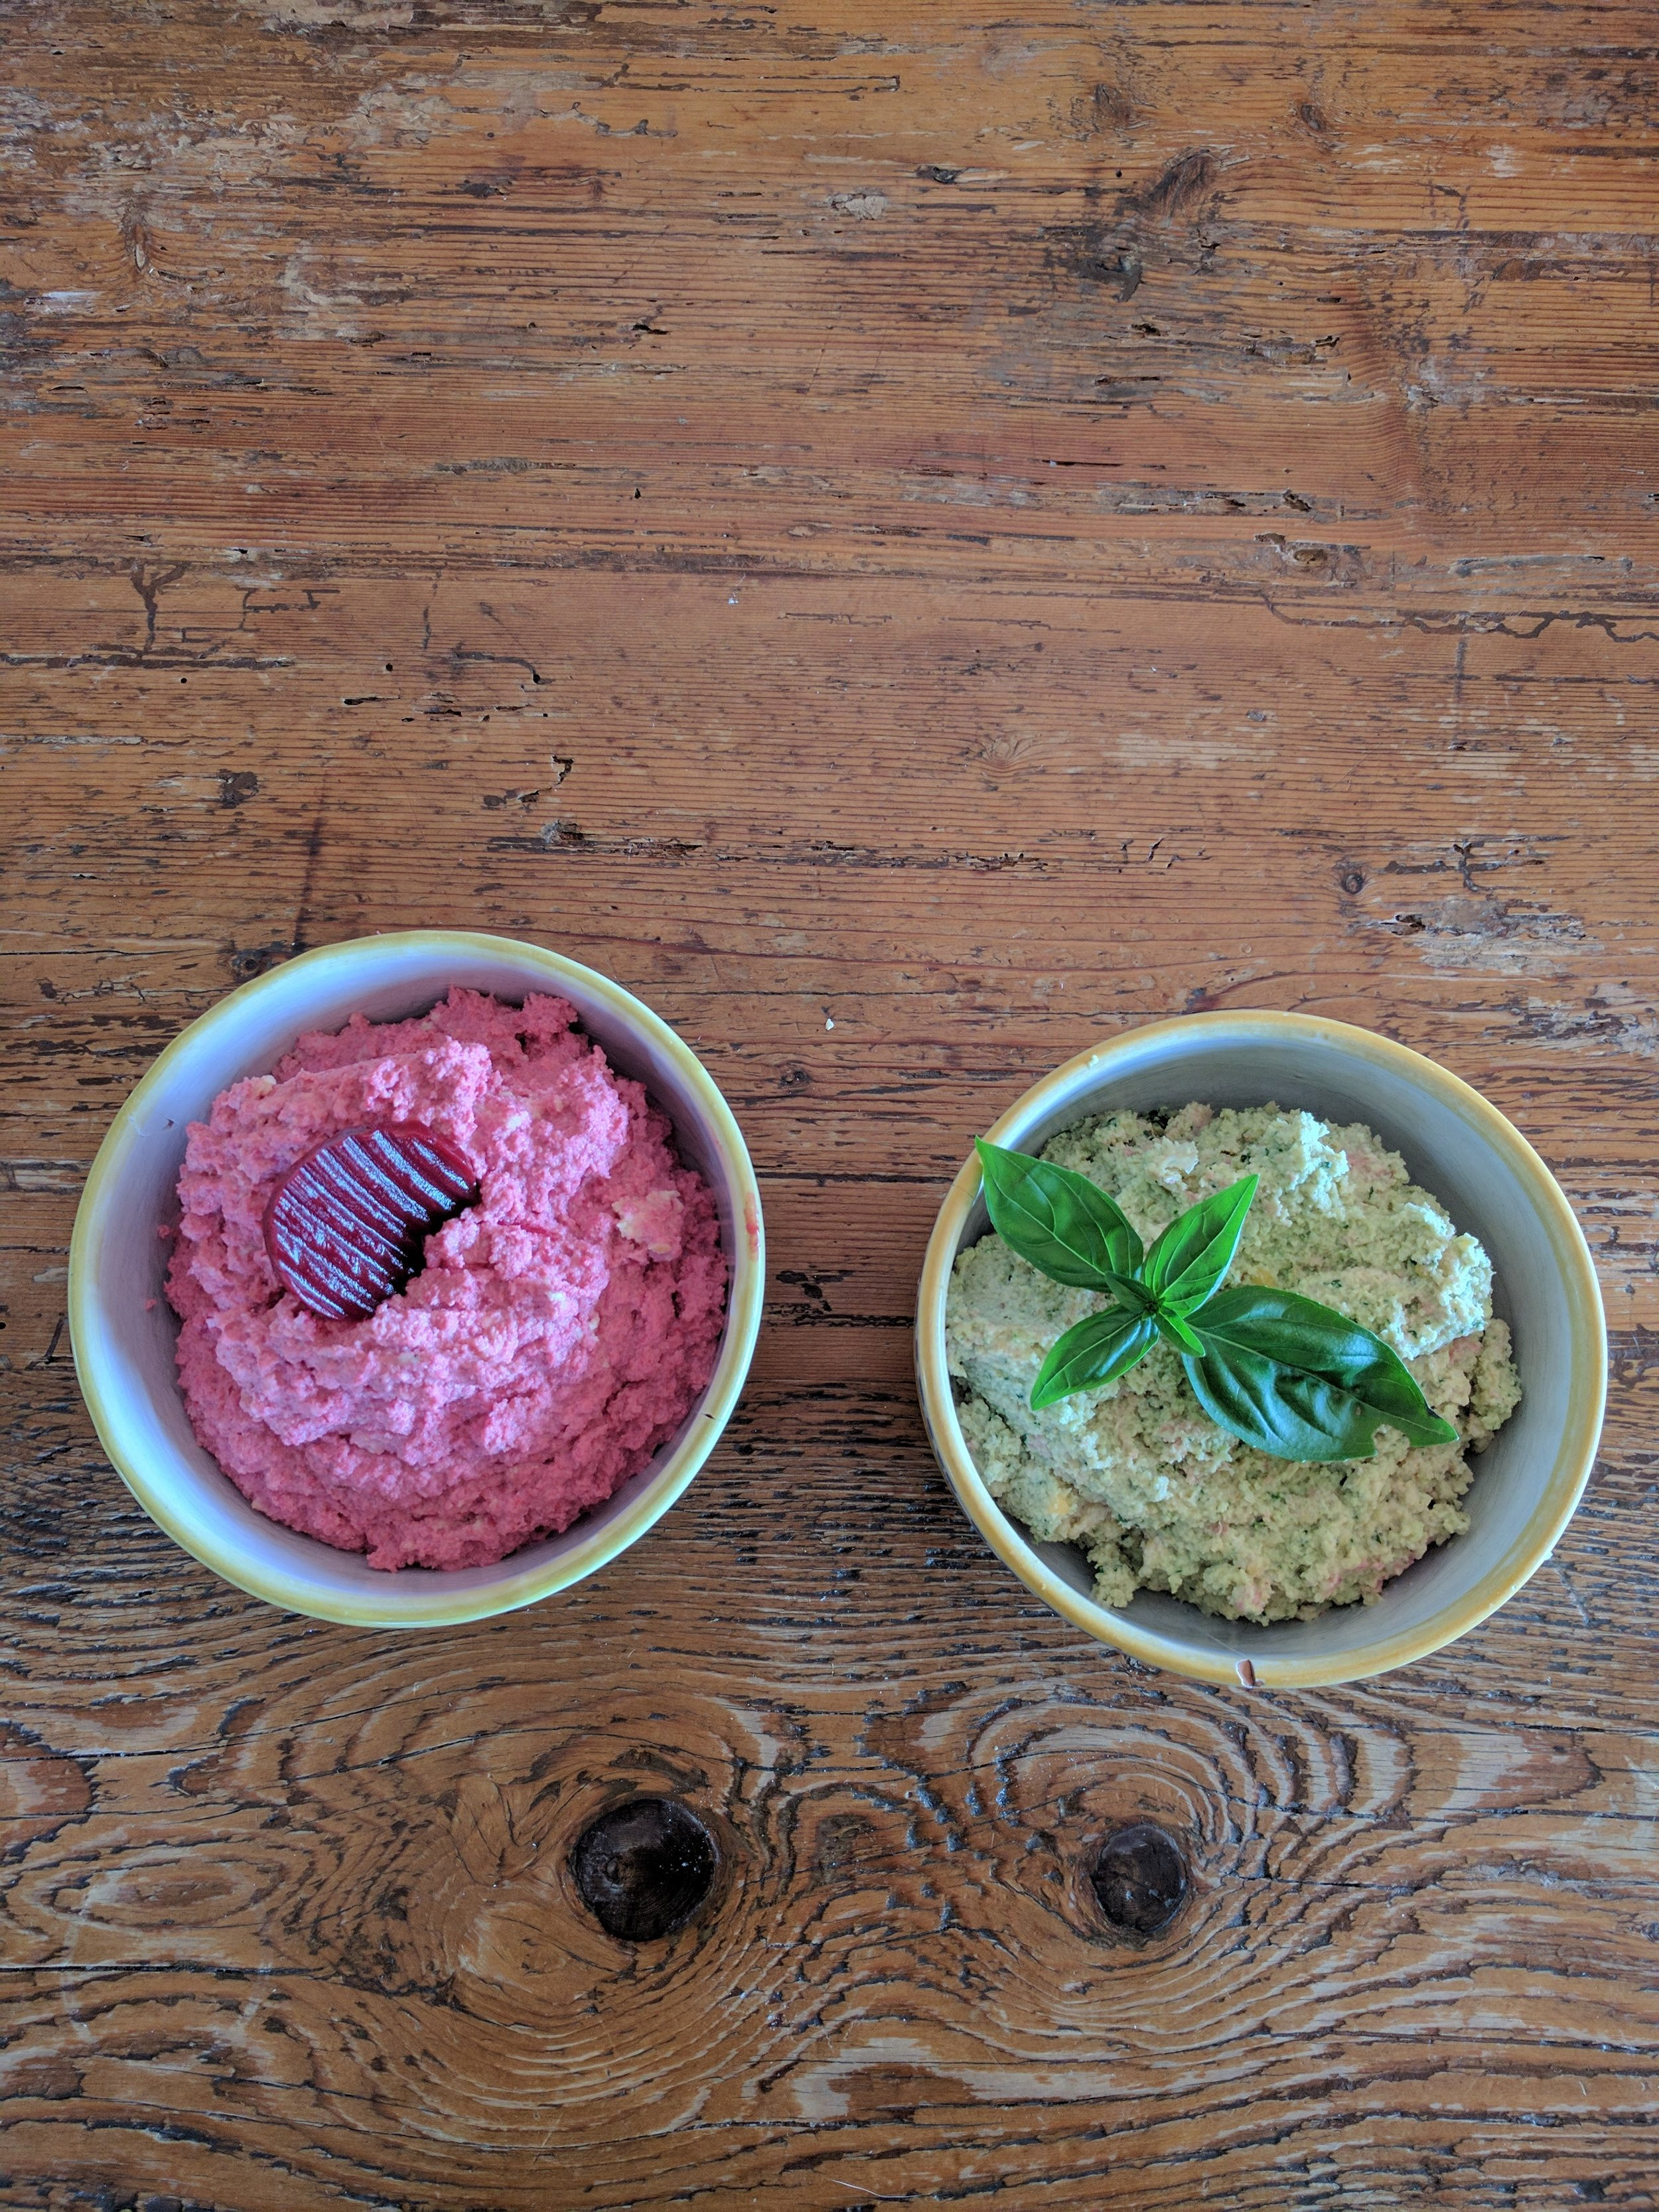 We've made some hummus with basil and another with beetroot - yum!